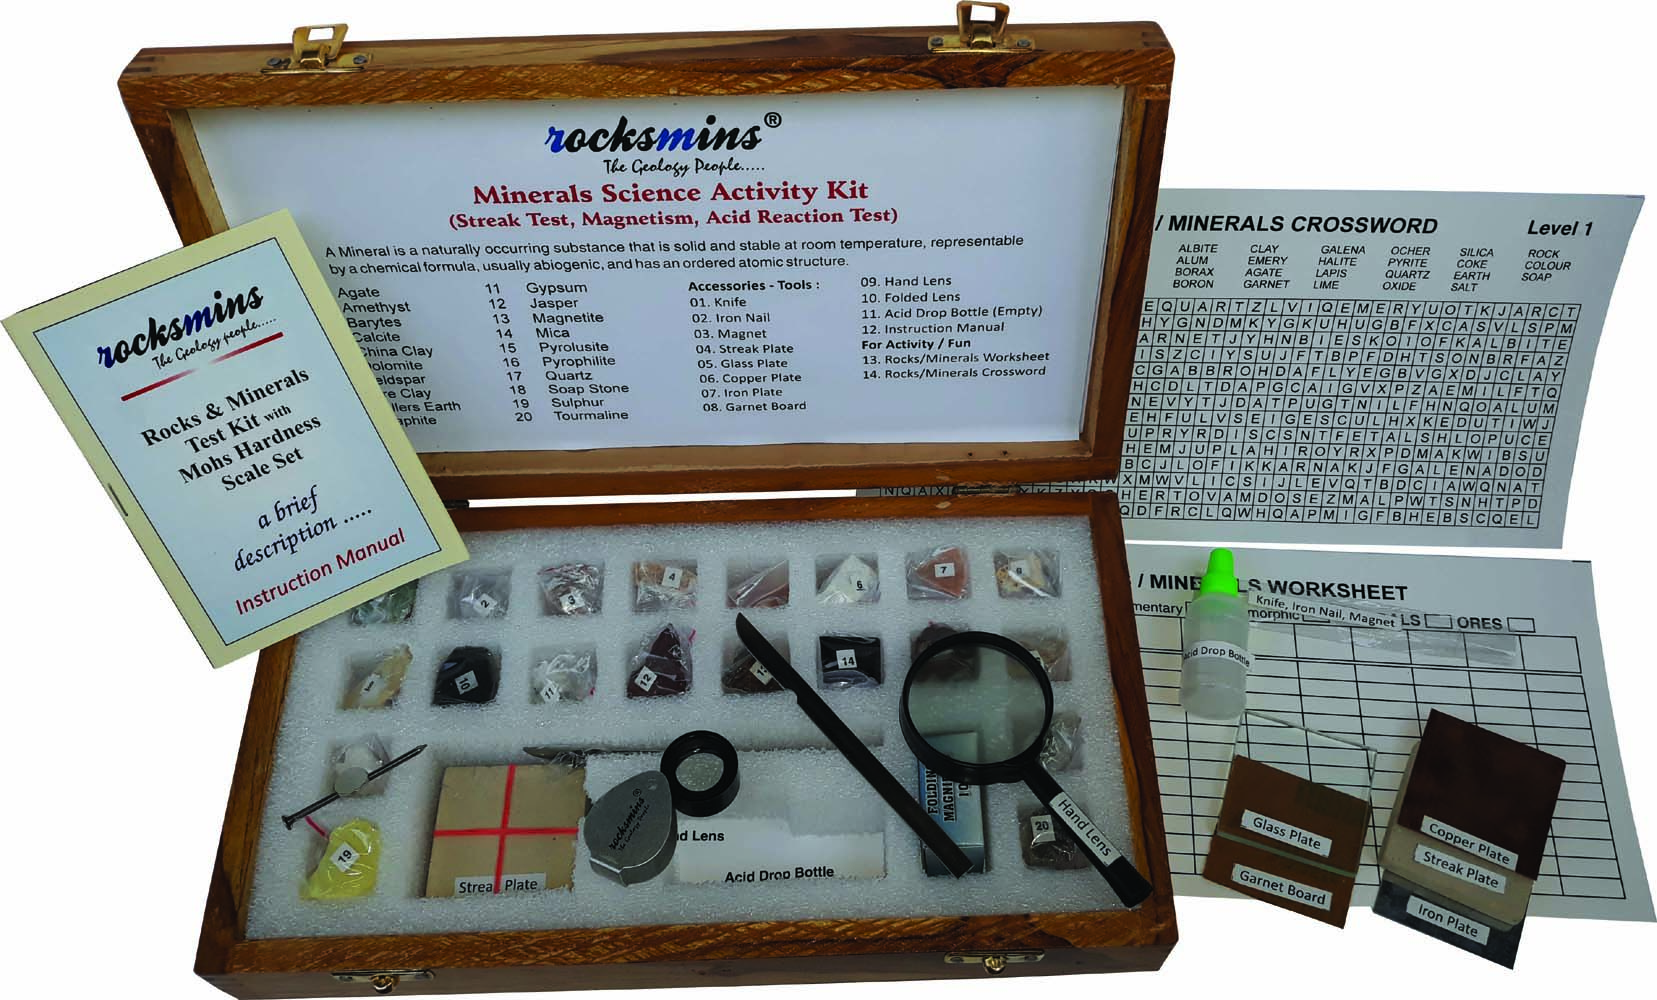 Minerals Science Activity Kit